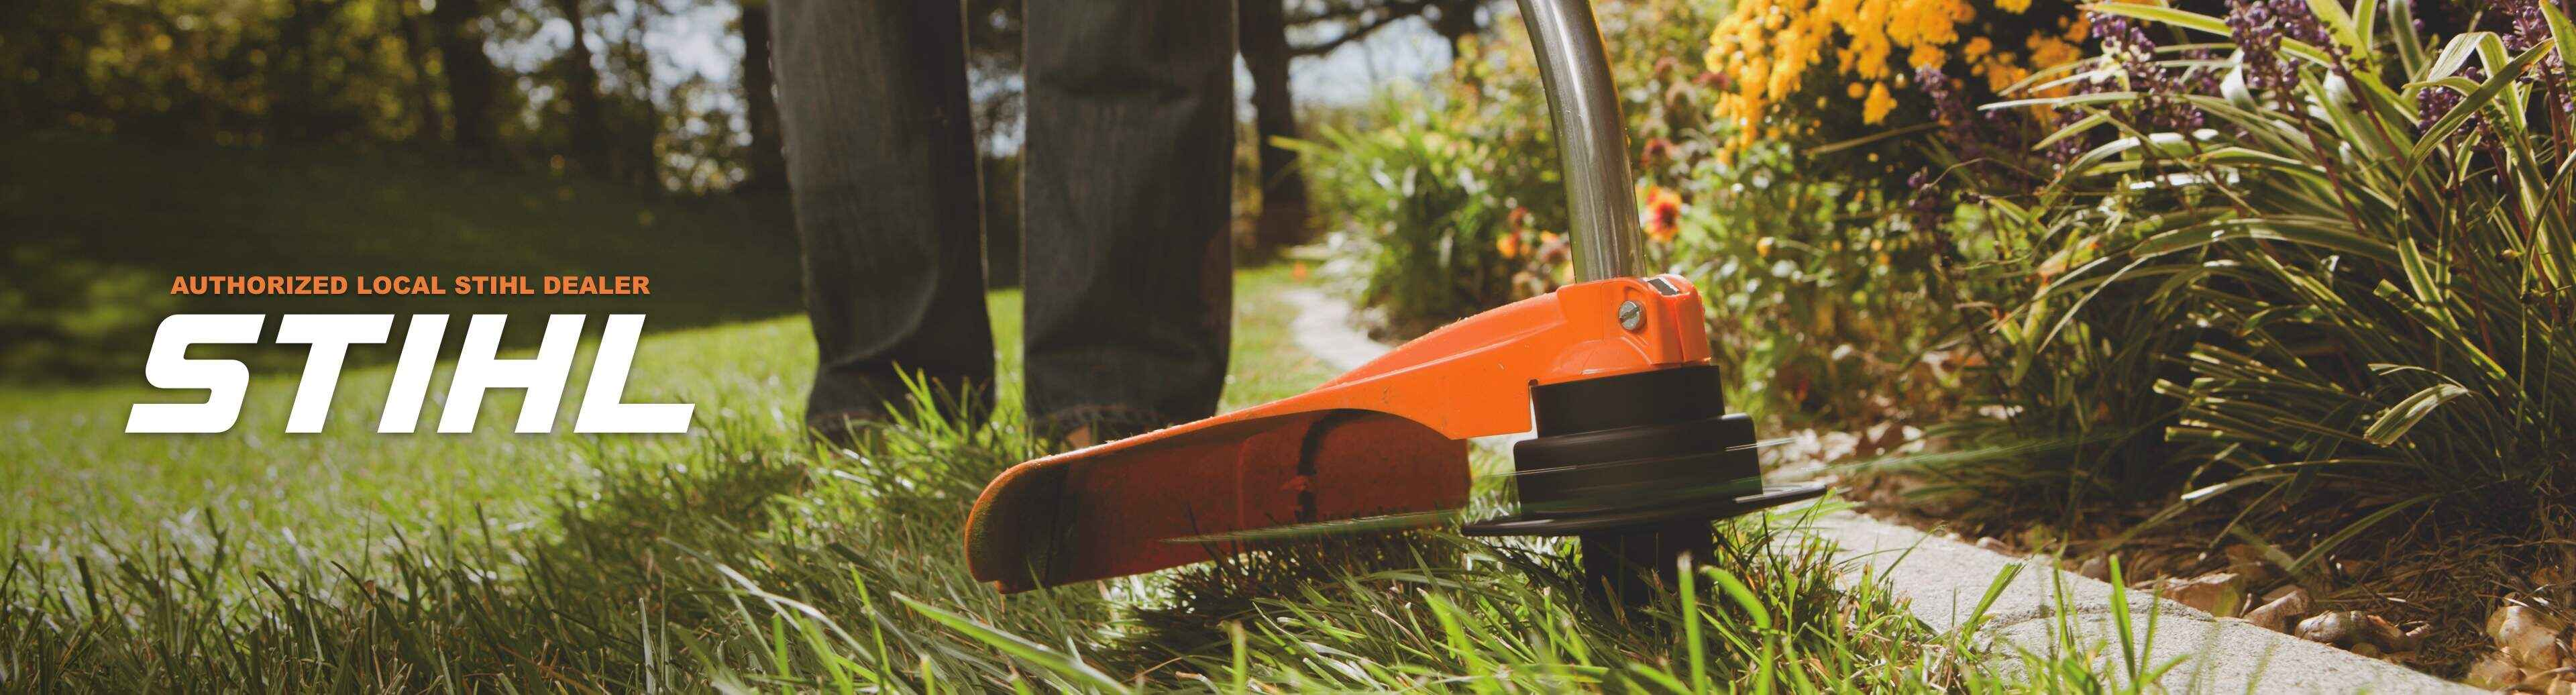 Shop Sithl from Carr Hardware - Authorized Local Stihl Dealer